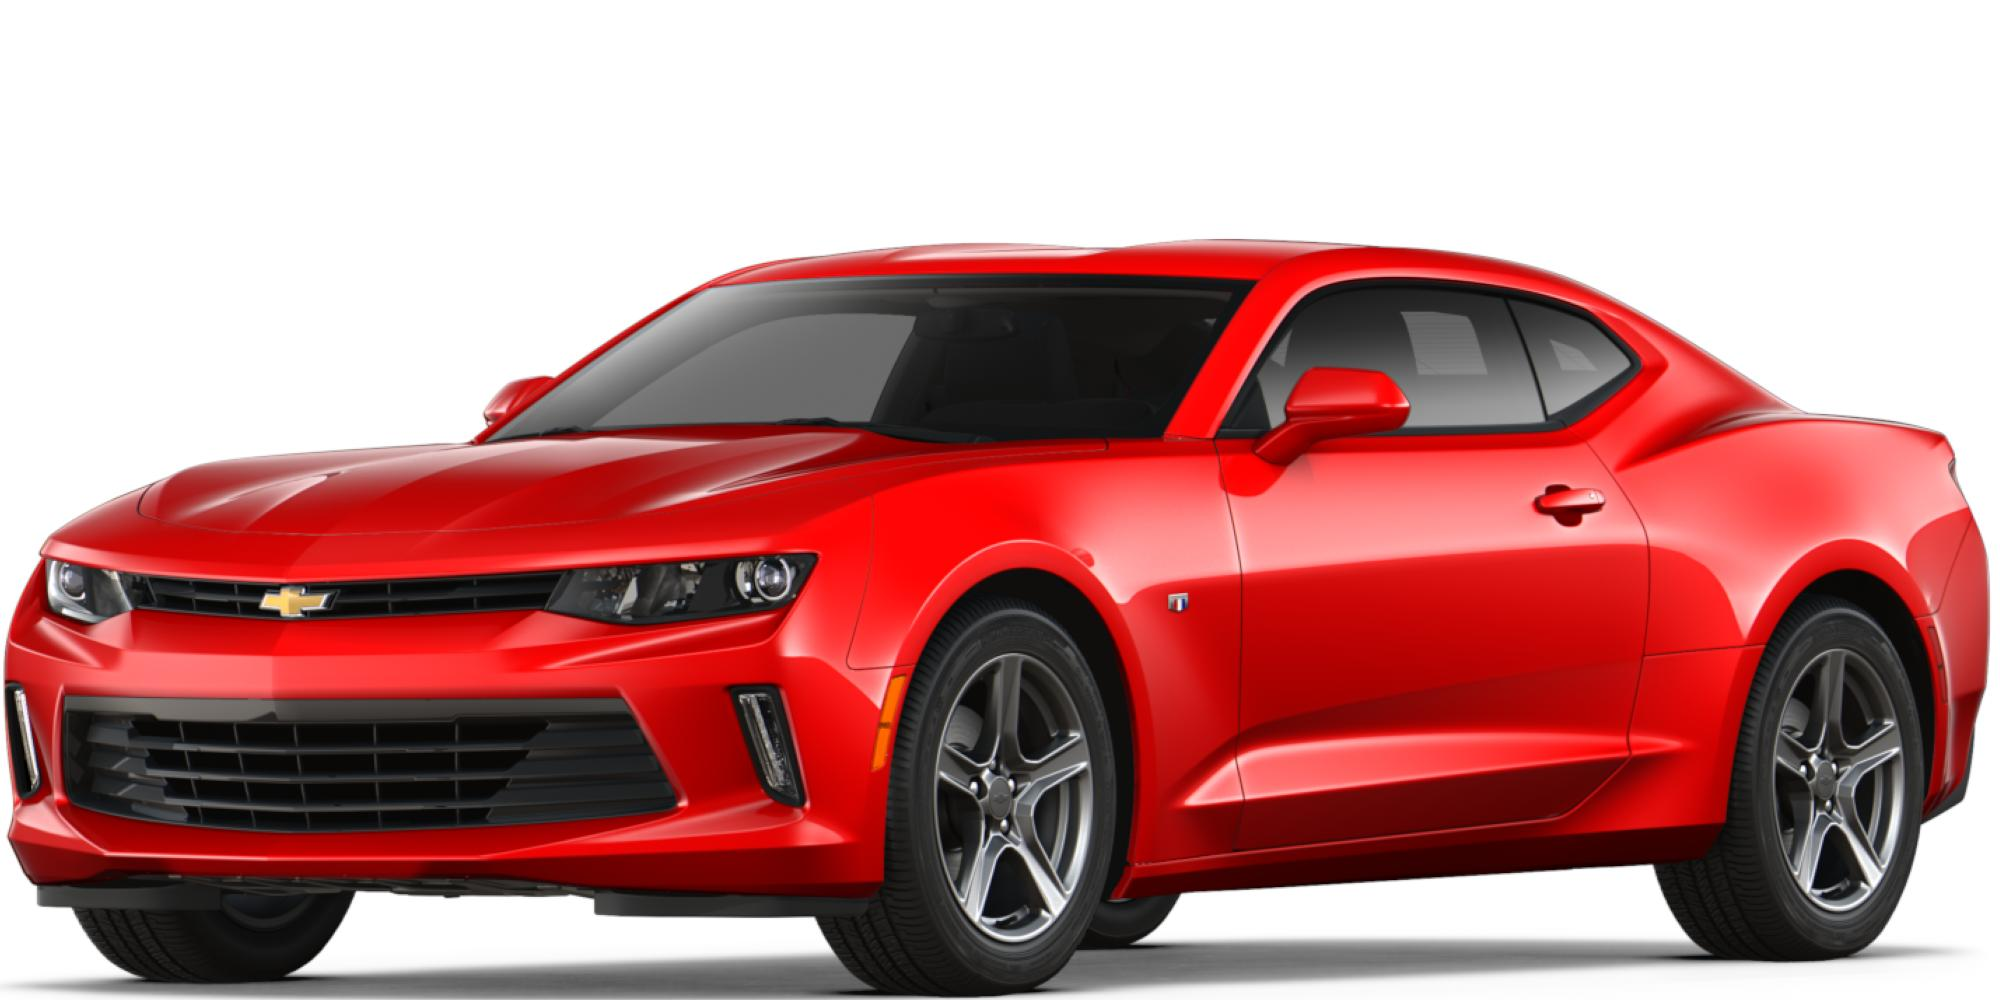 Chevy Build And Price >> New Chevy Camaro Lease Deals And Finance Specials Dry